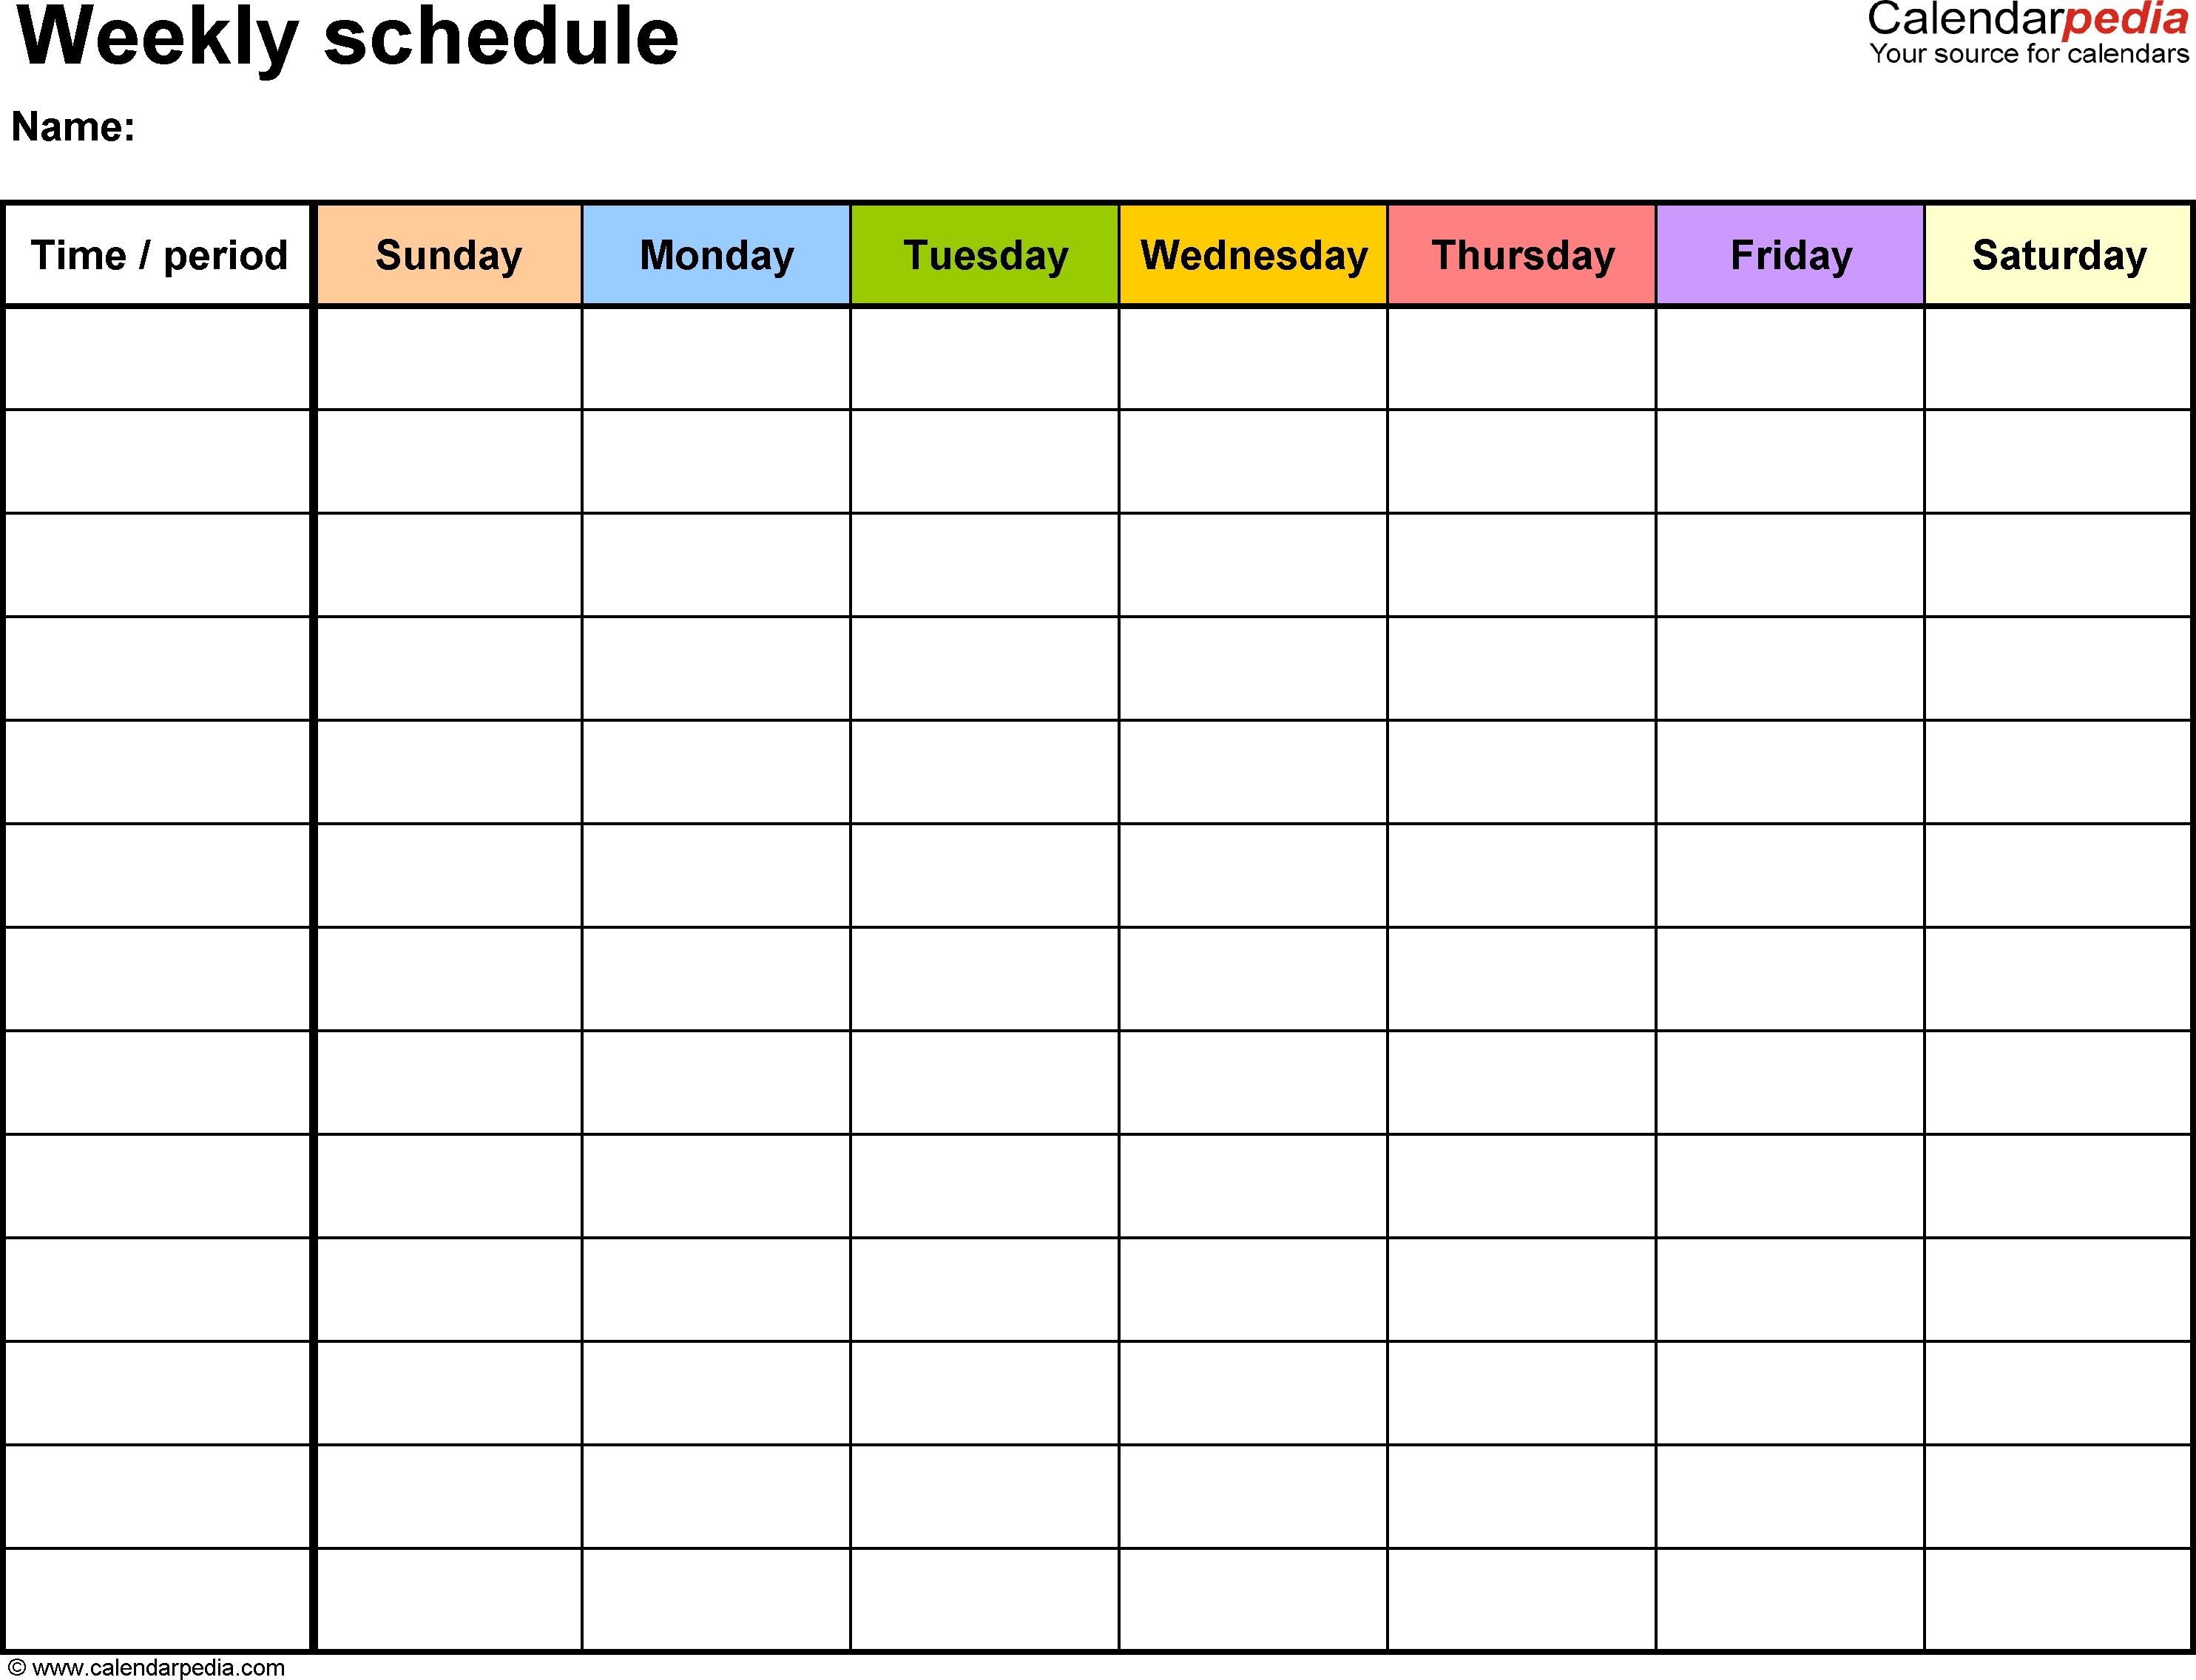 Saturday Friday Calendar Template   Monthly Printable Calender Calendar Saturday To Friday